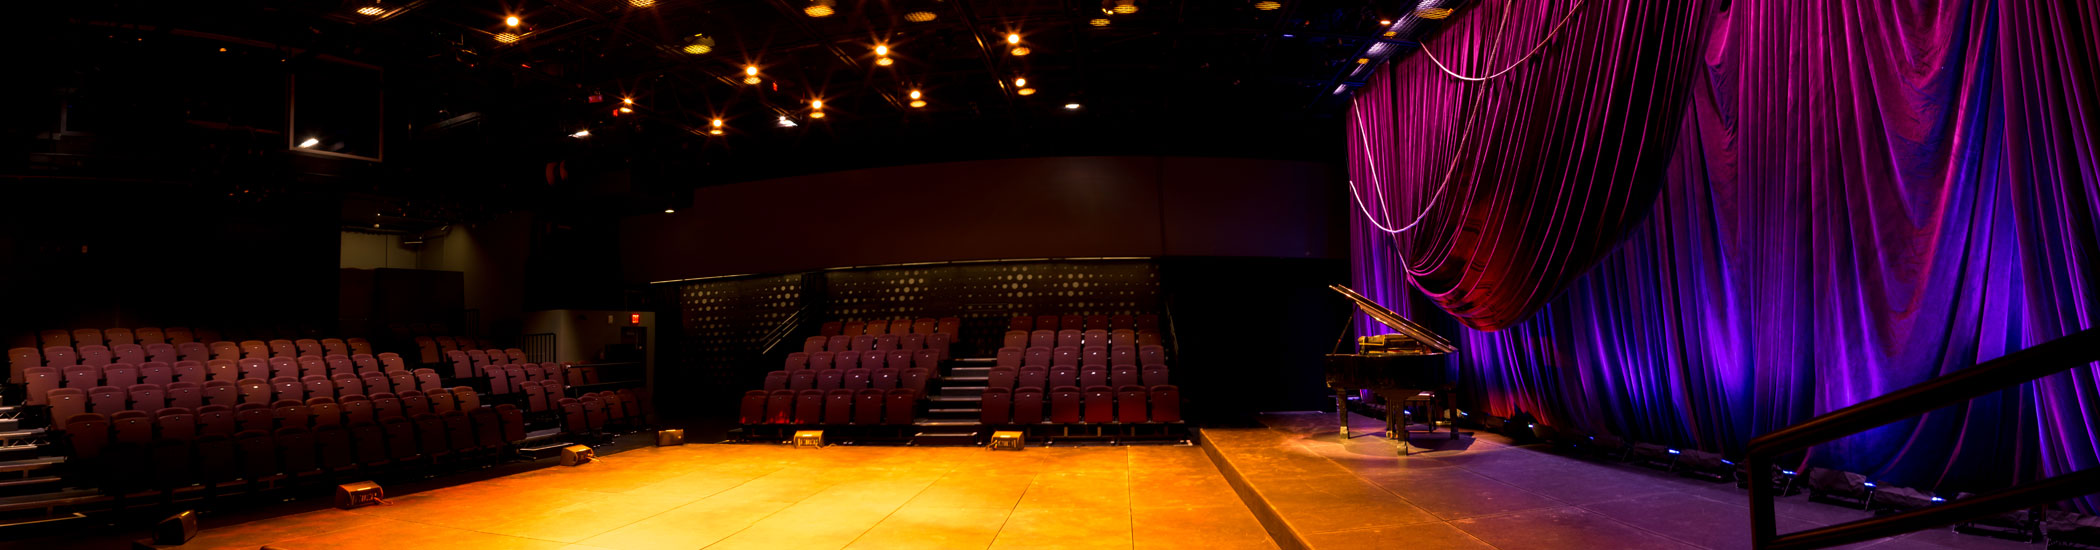 Newmont Stage at the BMO Theatre Centre - Photo by Moonrider Productions